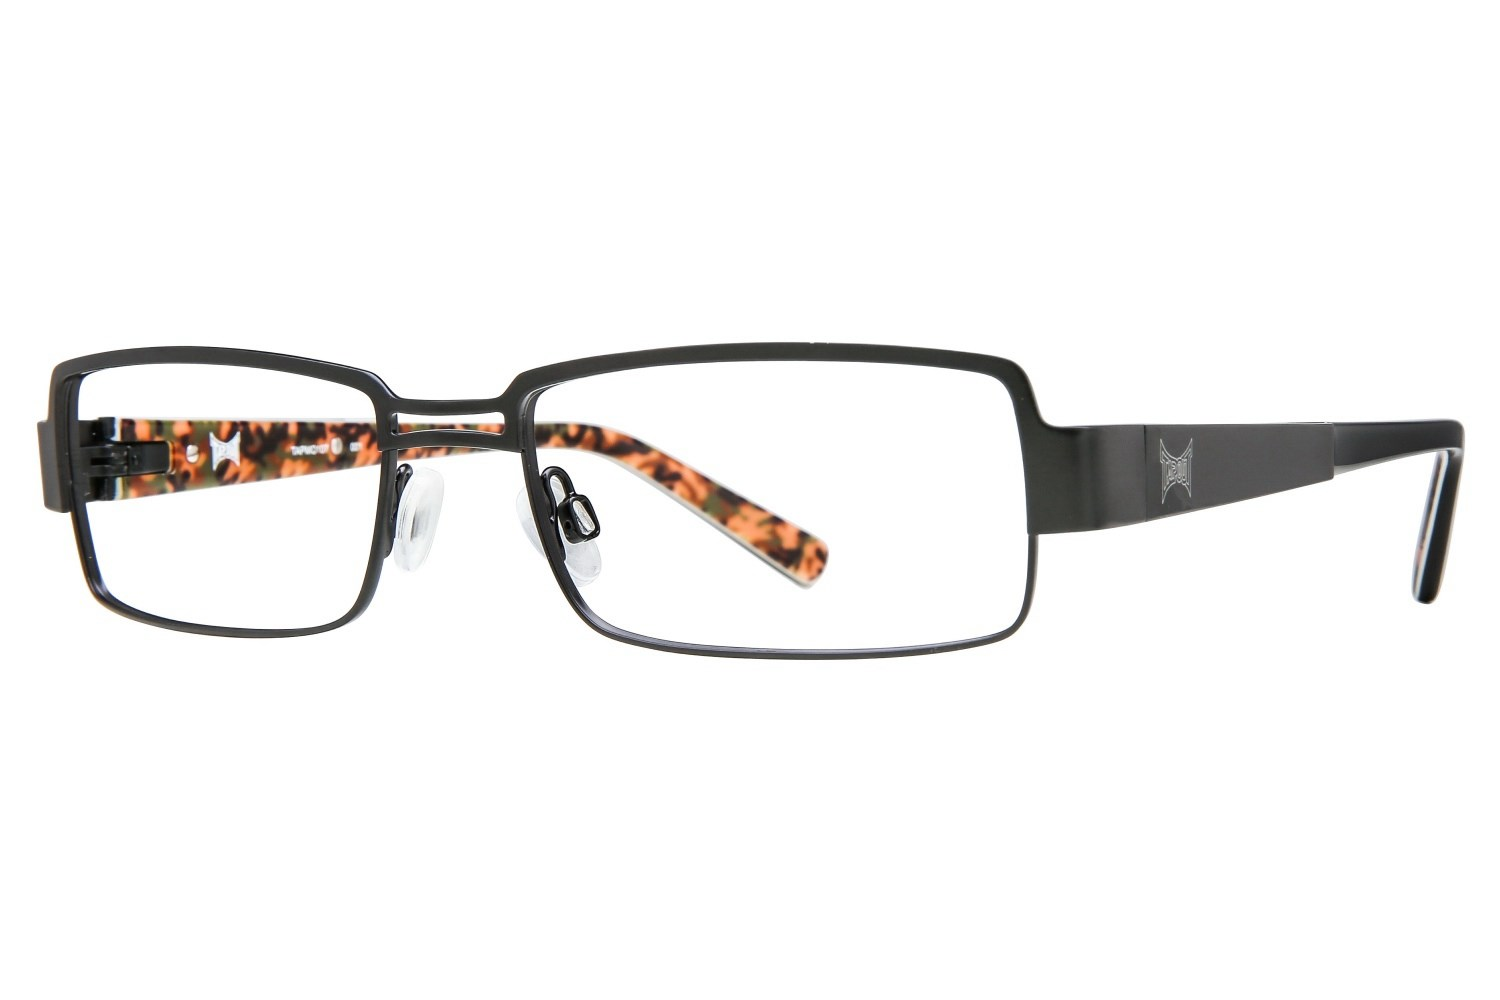 f19a78120e SKU-AC24723 TapouT TAPMO107 Eyeglasses Frames from Discount Glasses sku